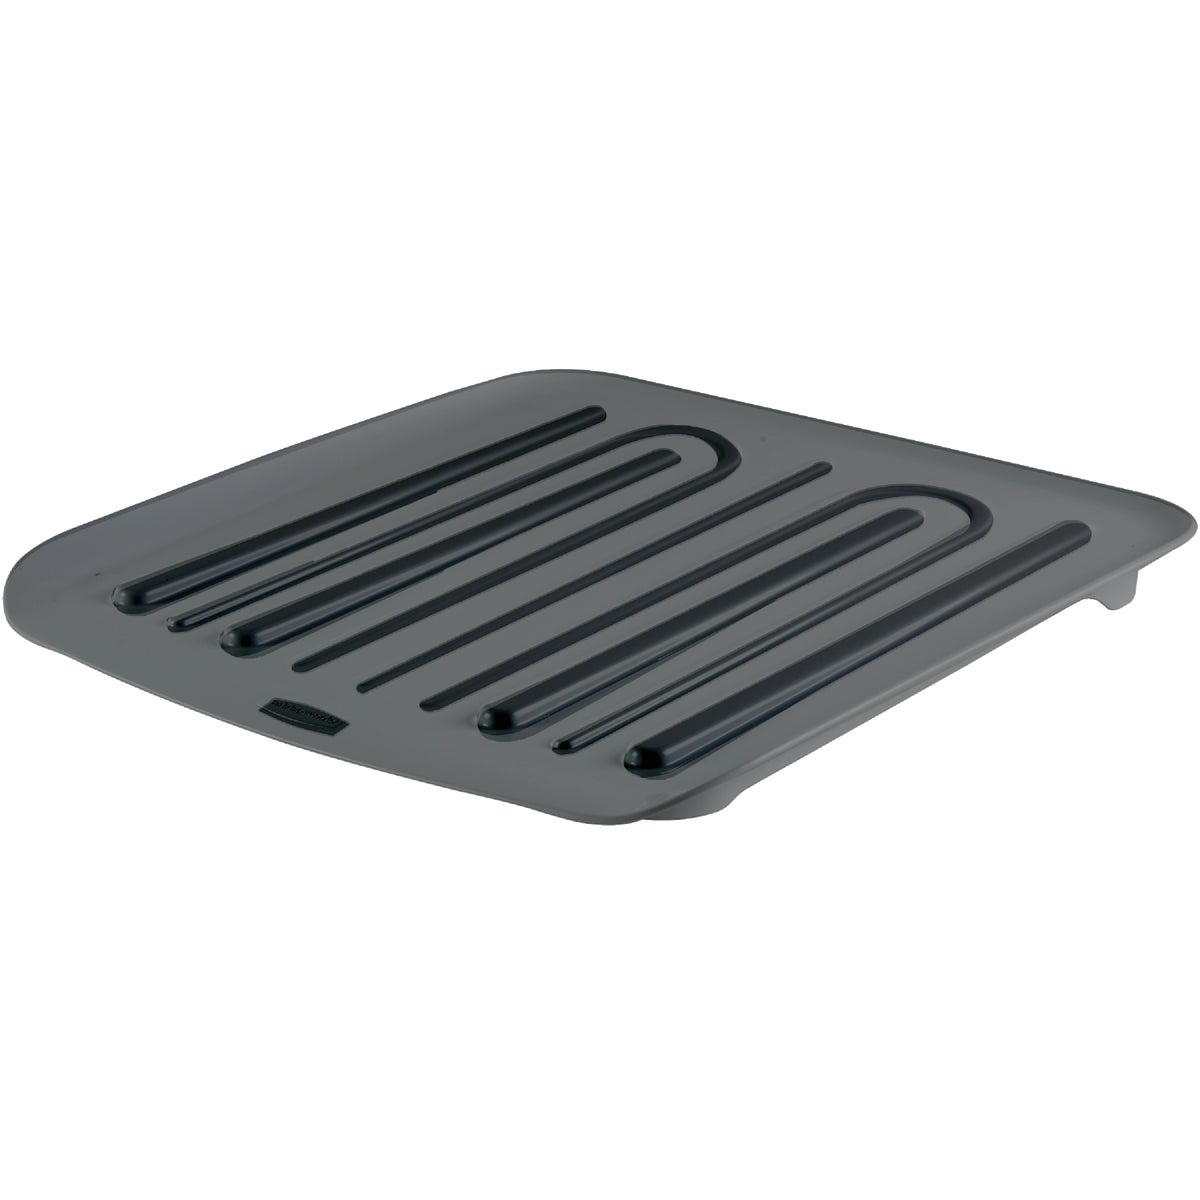 SMALL BLACK DRAINER TRAY - 1180MABLA by Rubbermaid Home